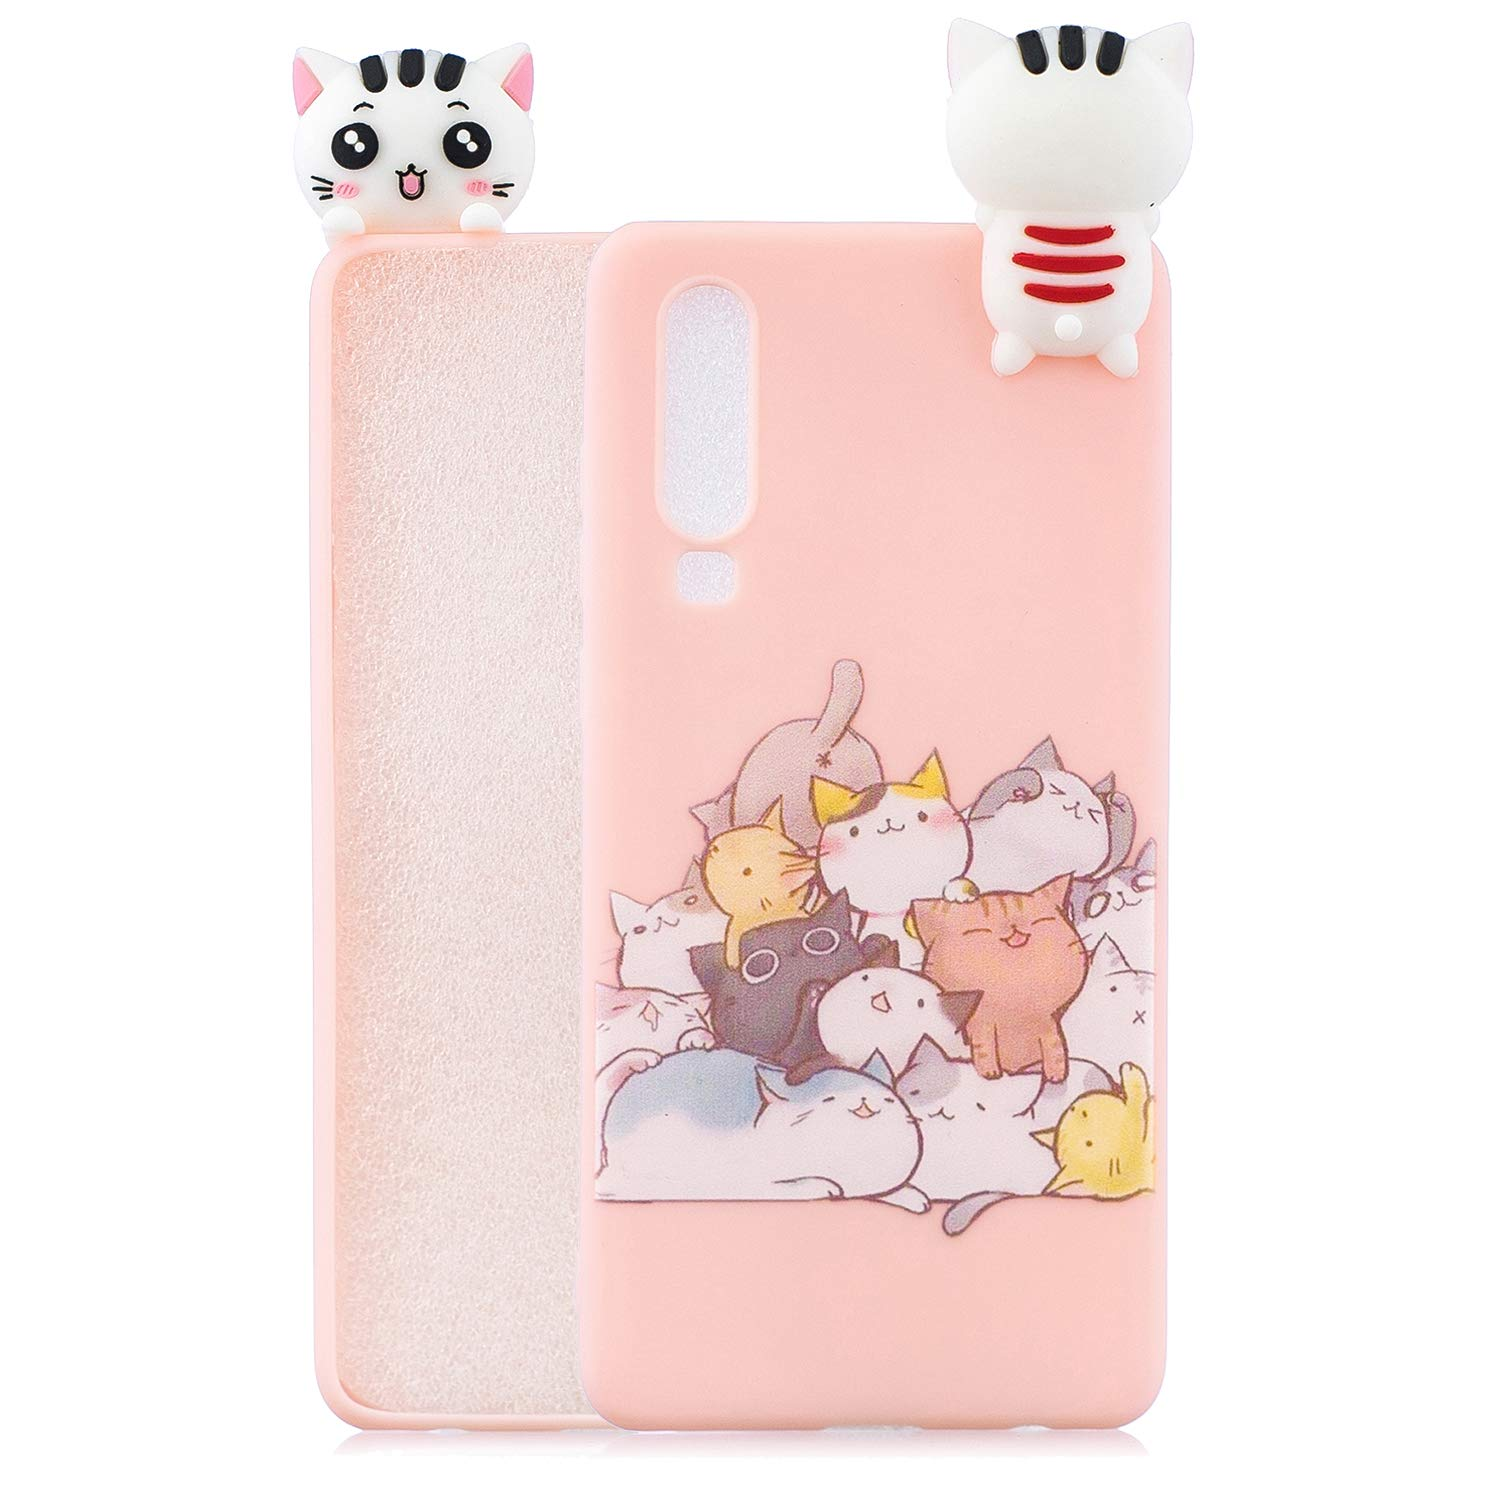 iPhone 5S Case iPhone 5 Case,iPhone SE Case Tznzxm New 3D Cartoon Animals Character Shockproof Full Protective Soft Silicone Rubber Anti-Scratch Non-Slip Phone Back Case for iPhone 5S 5 SE Panda